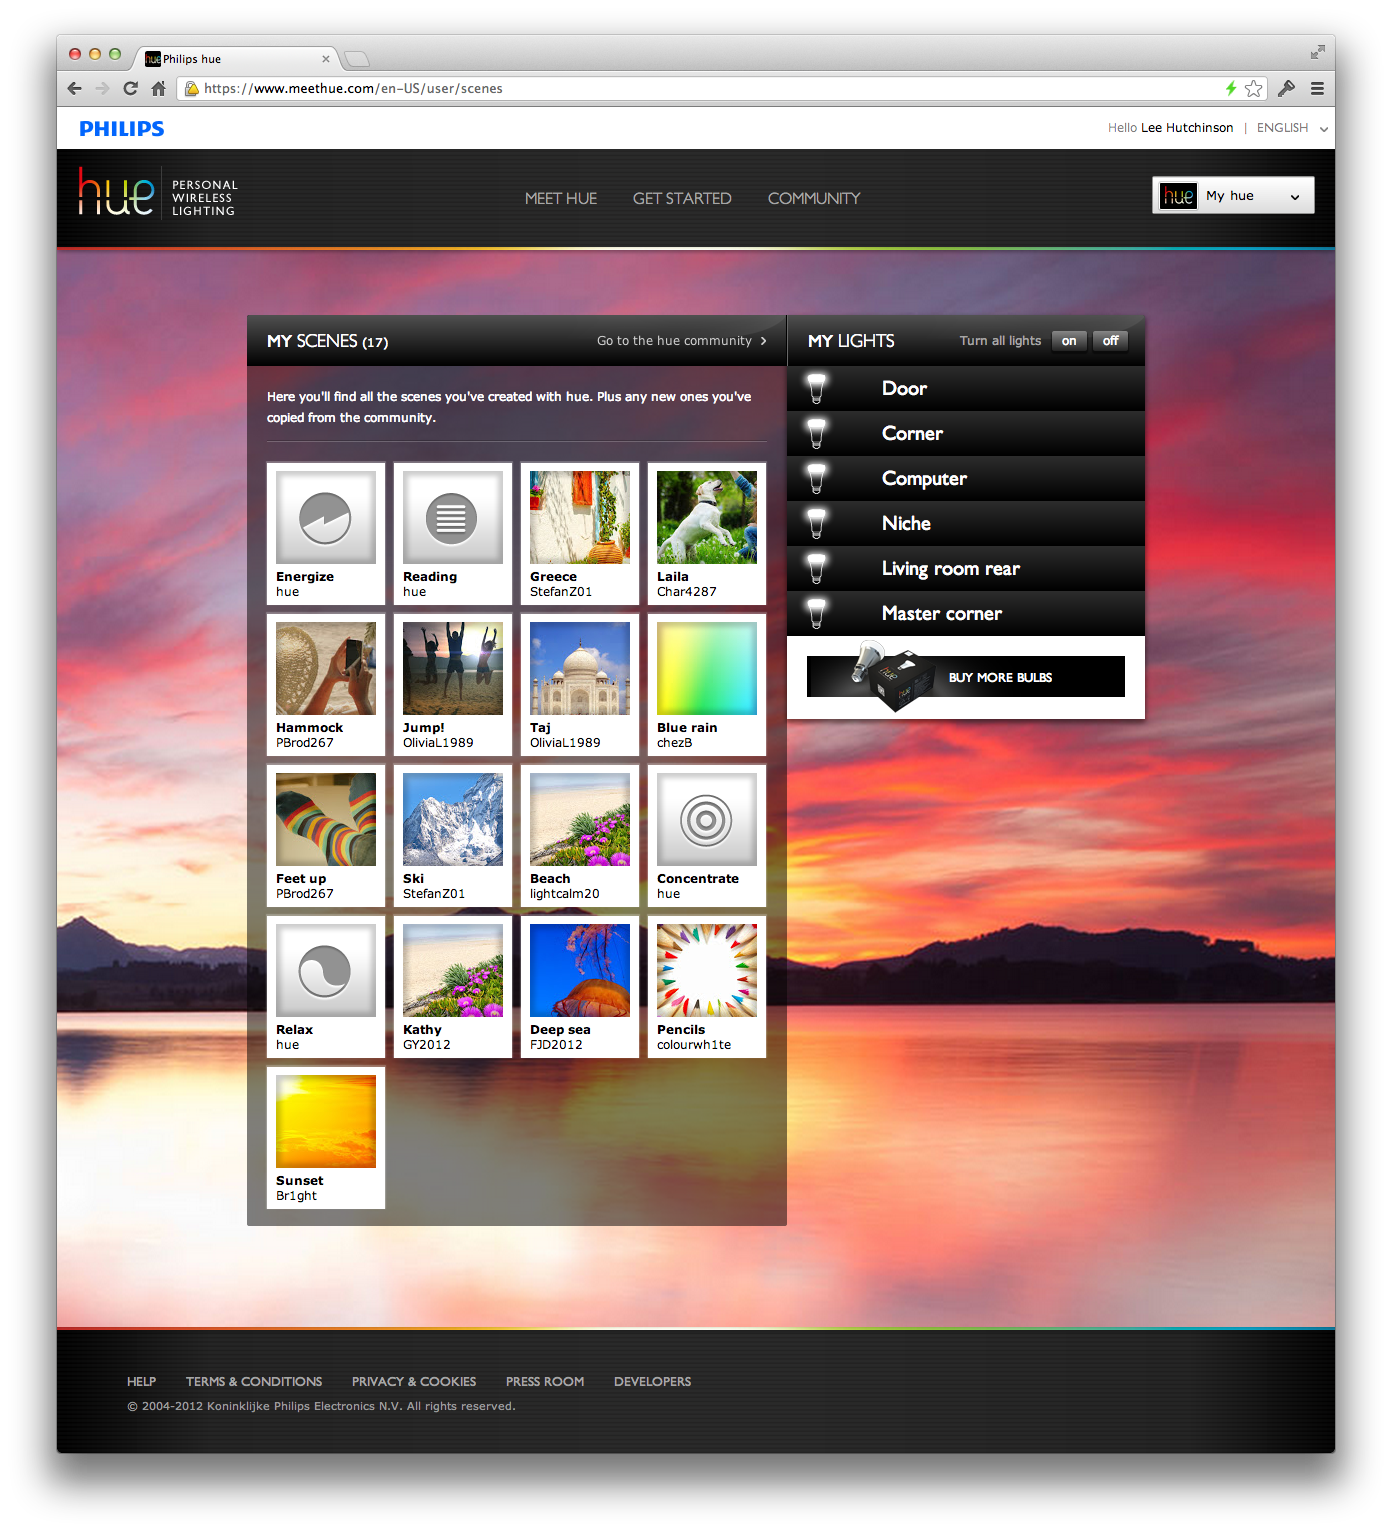 The Hue Web portal's front page, showing my installed scenes and bulbs.